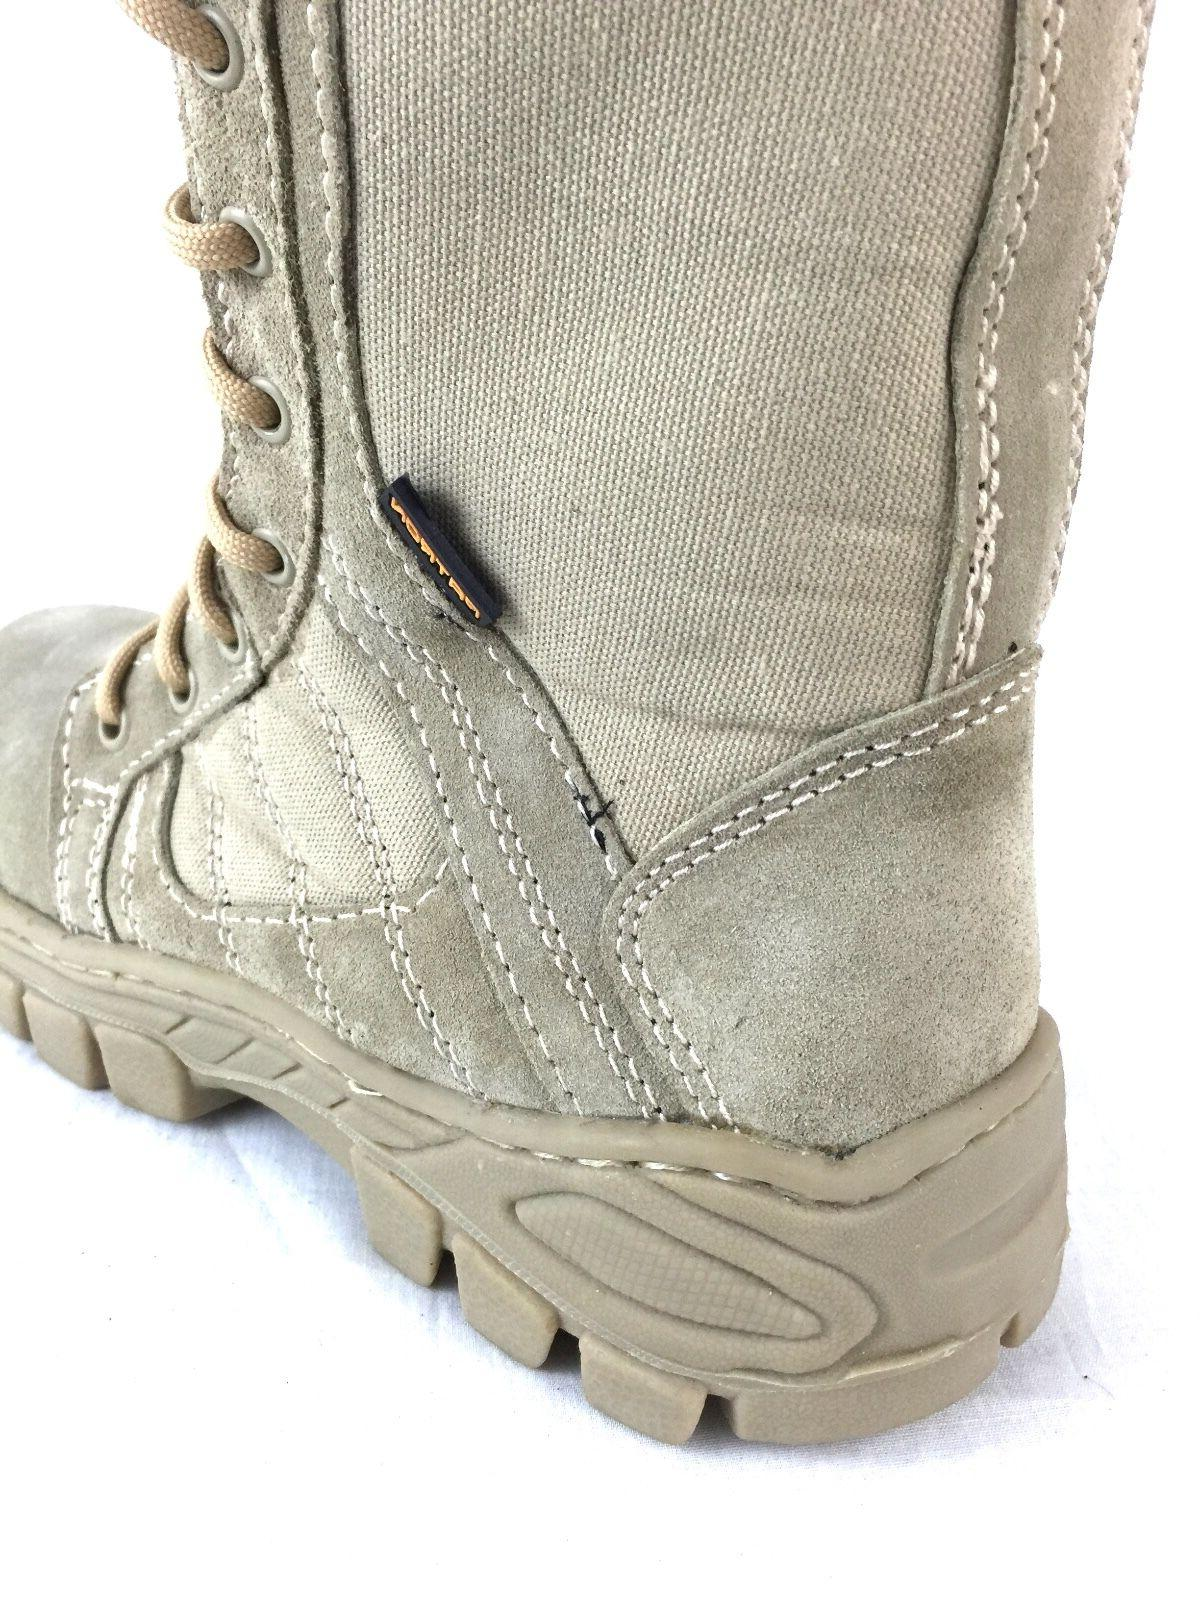 MEN'S WORK BOOTS COMBAT TACTICAL STYLE HEAVY DUTY